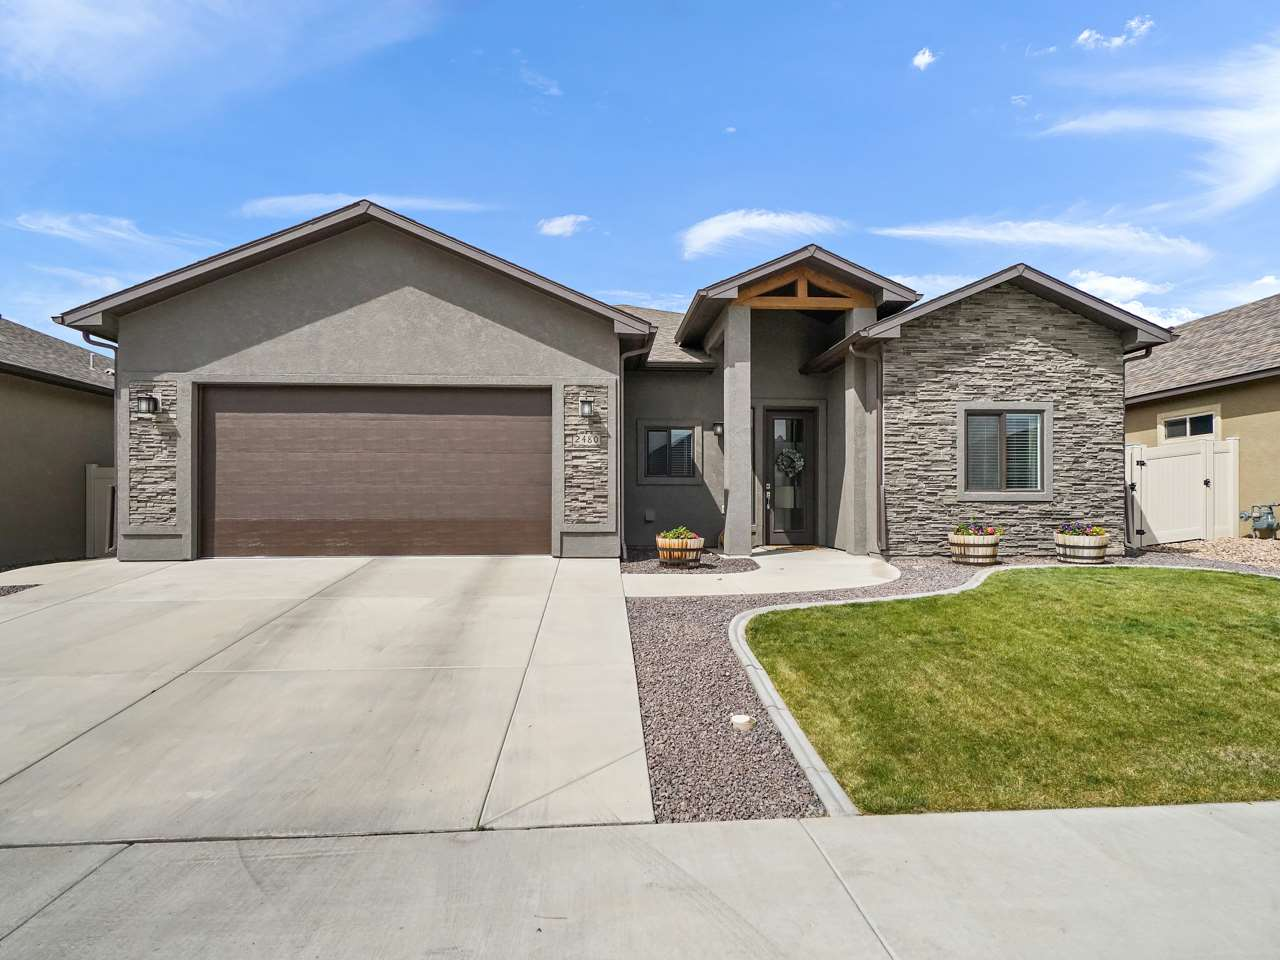 2480 Solstice Ln Property Photo - Grand Junction, CO real estate listing